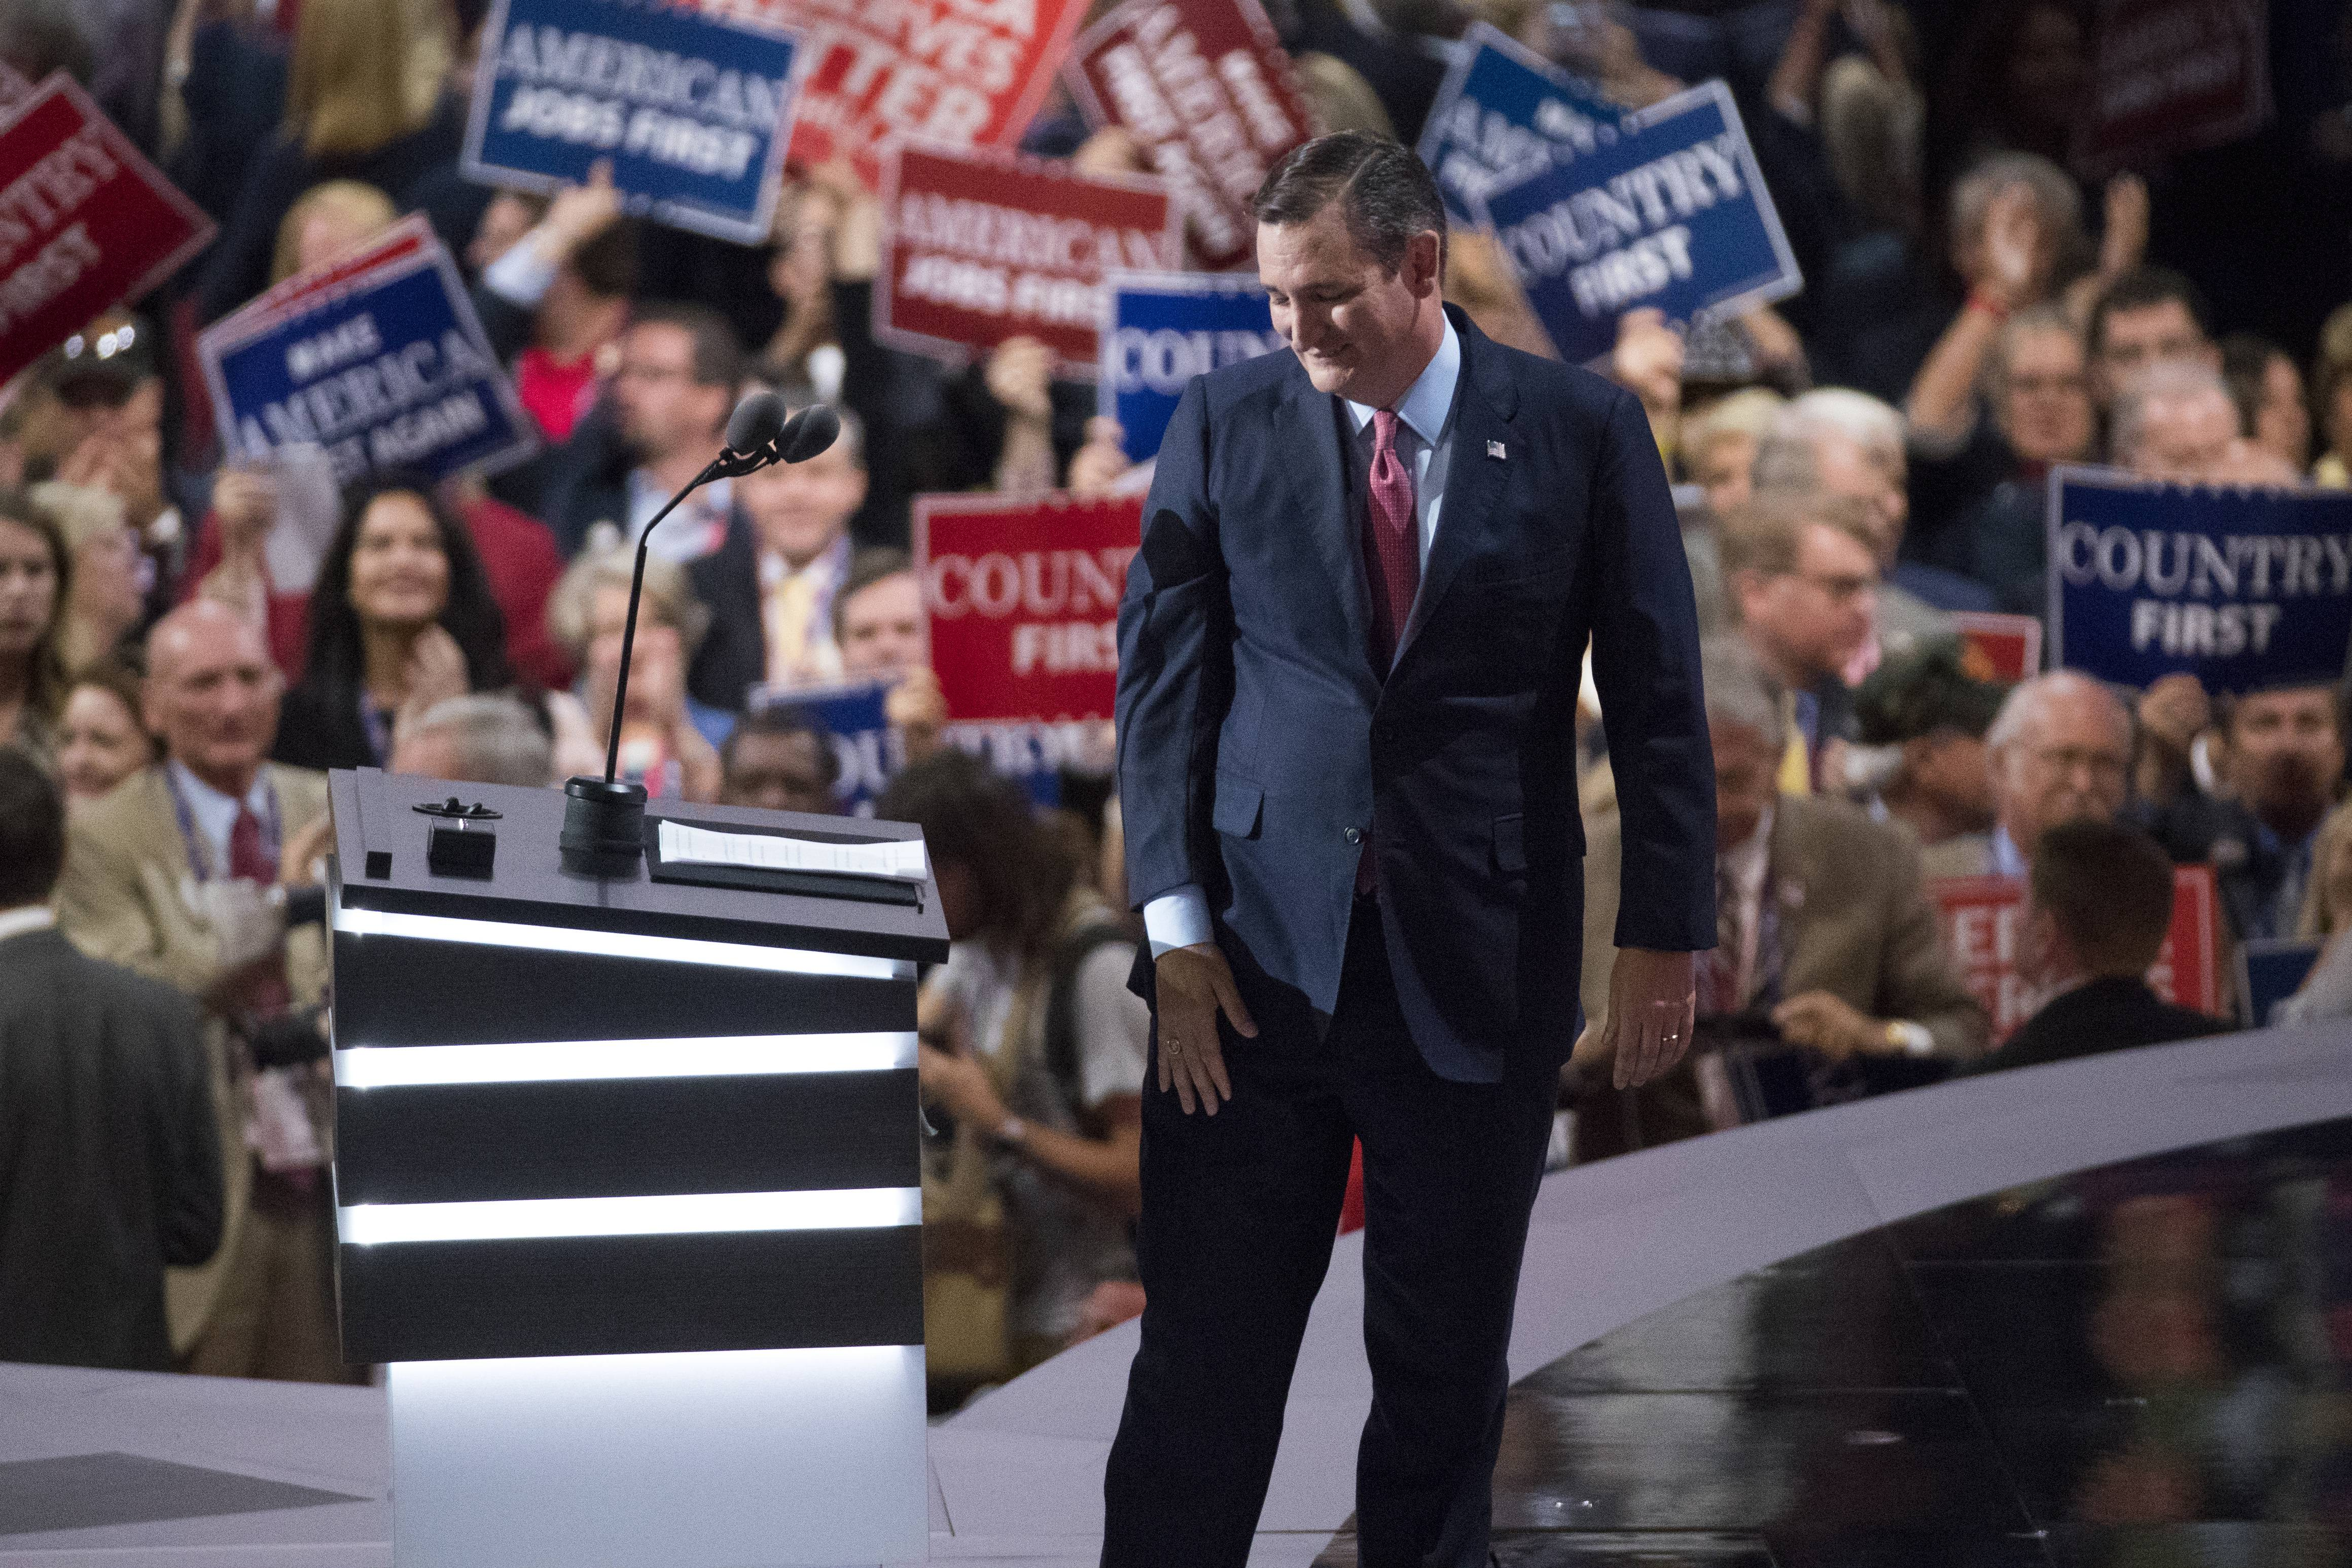 Sen. Ted Cruz, R-Texas, walks from the podium and receives some boos after speaking during the Republican National Convention Wednesday night.